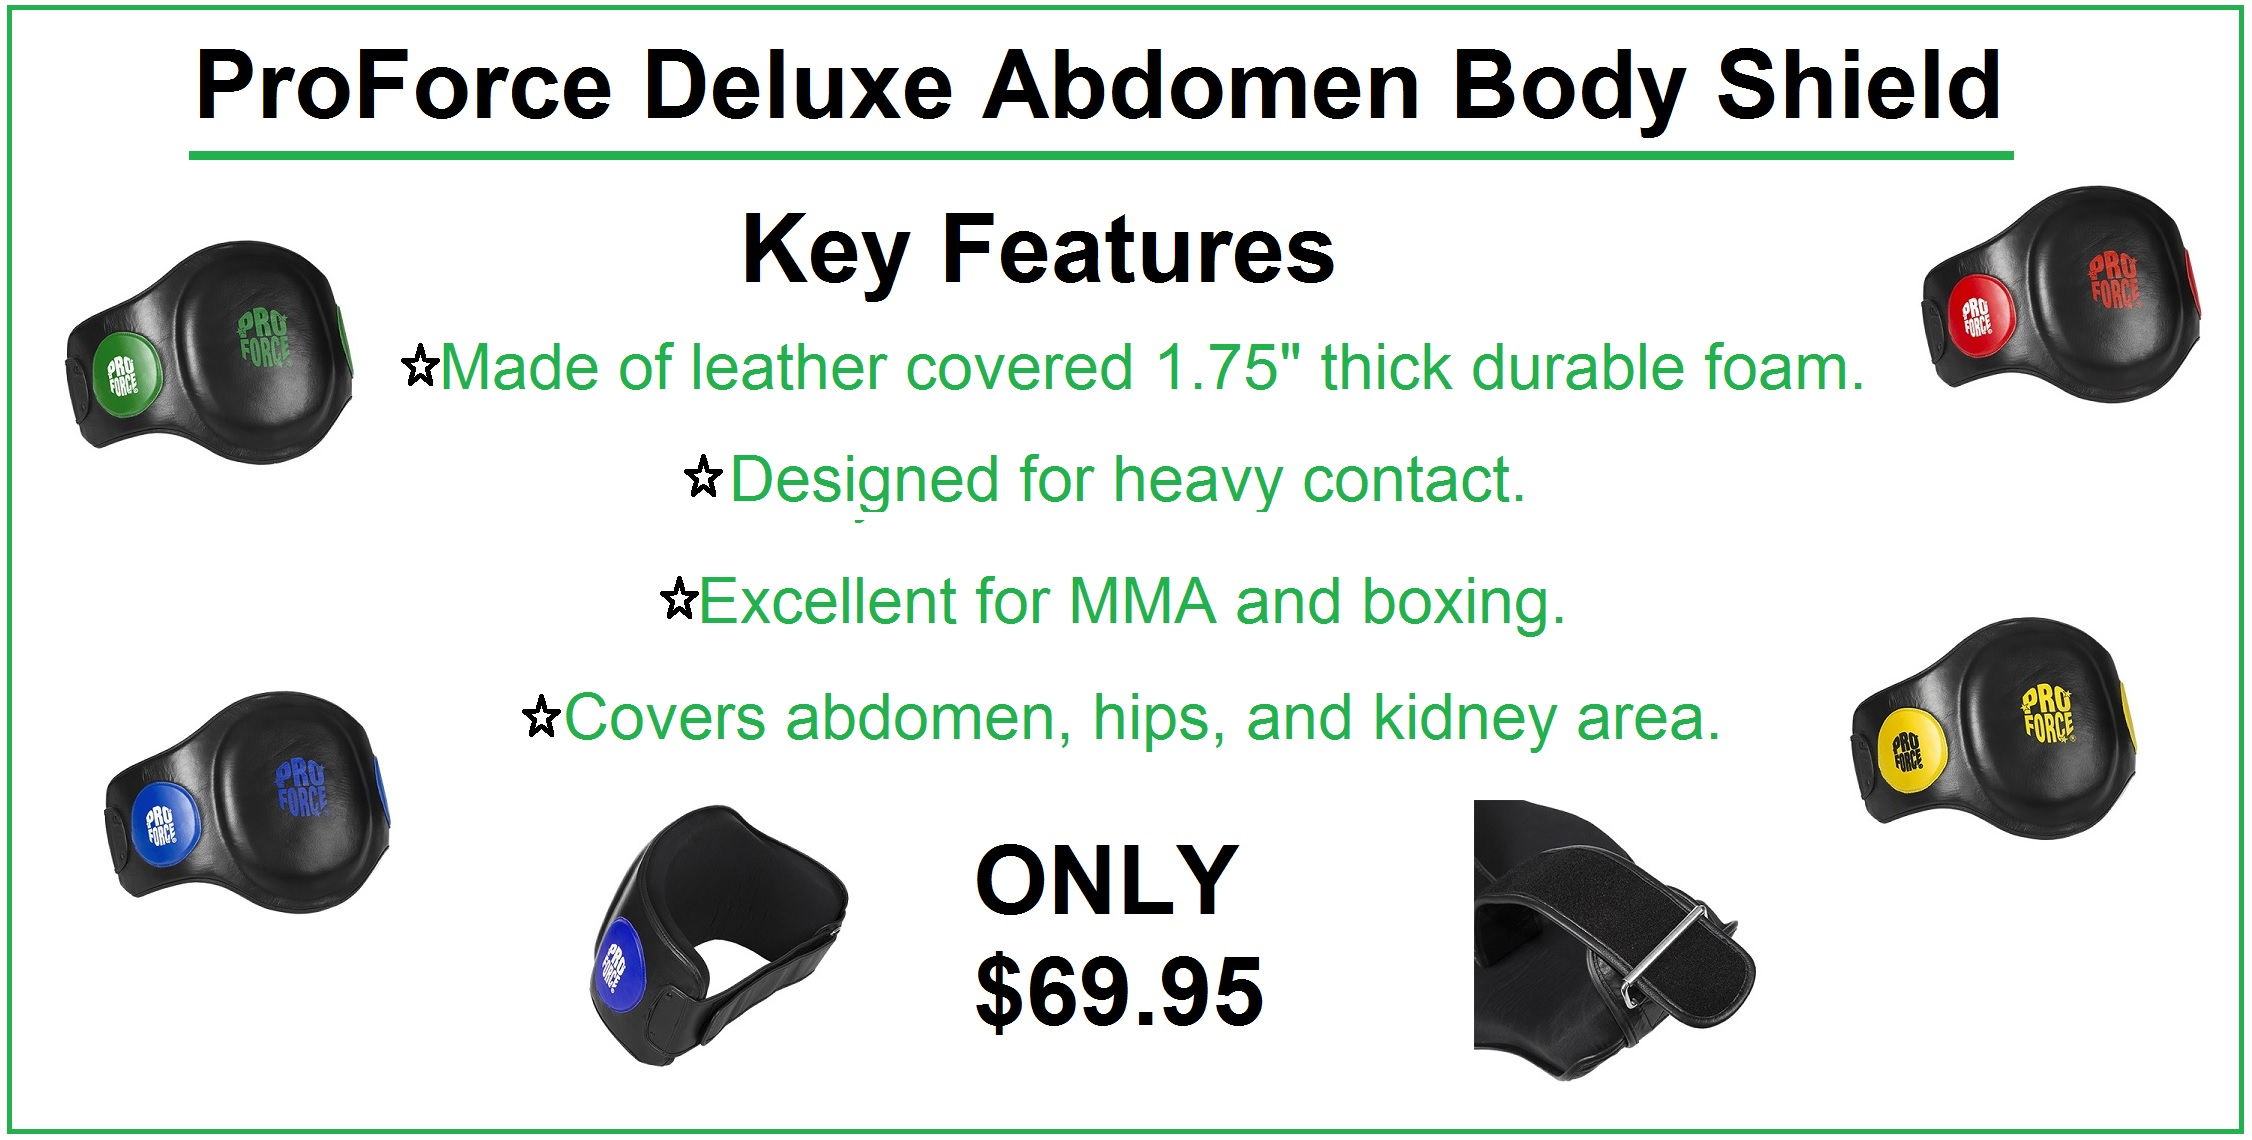 ProForce Deluxe Abdomen Body Shield